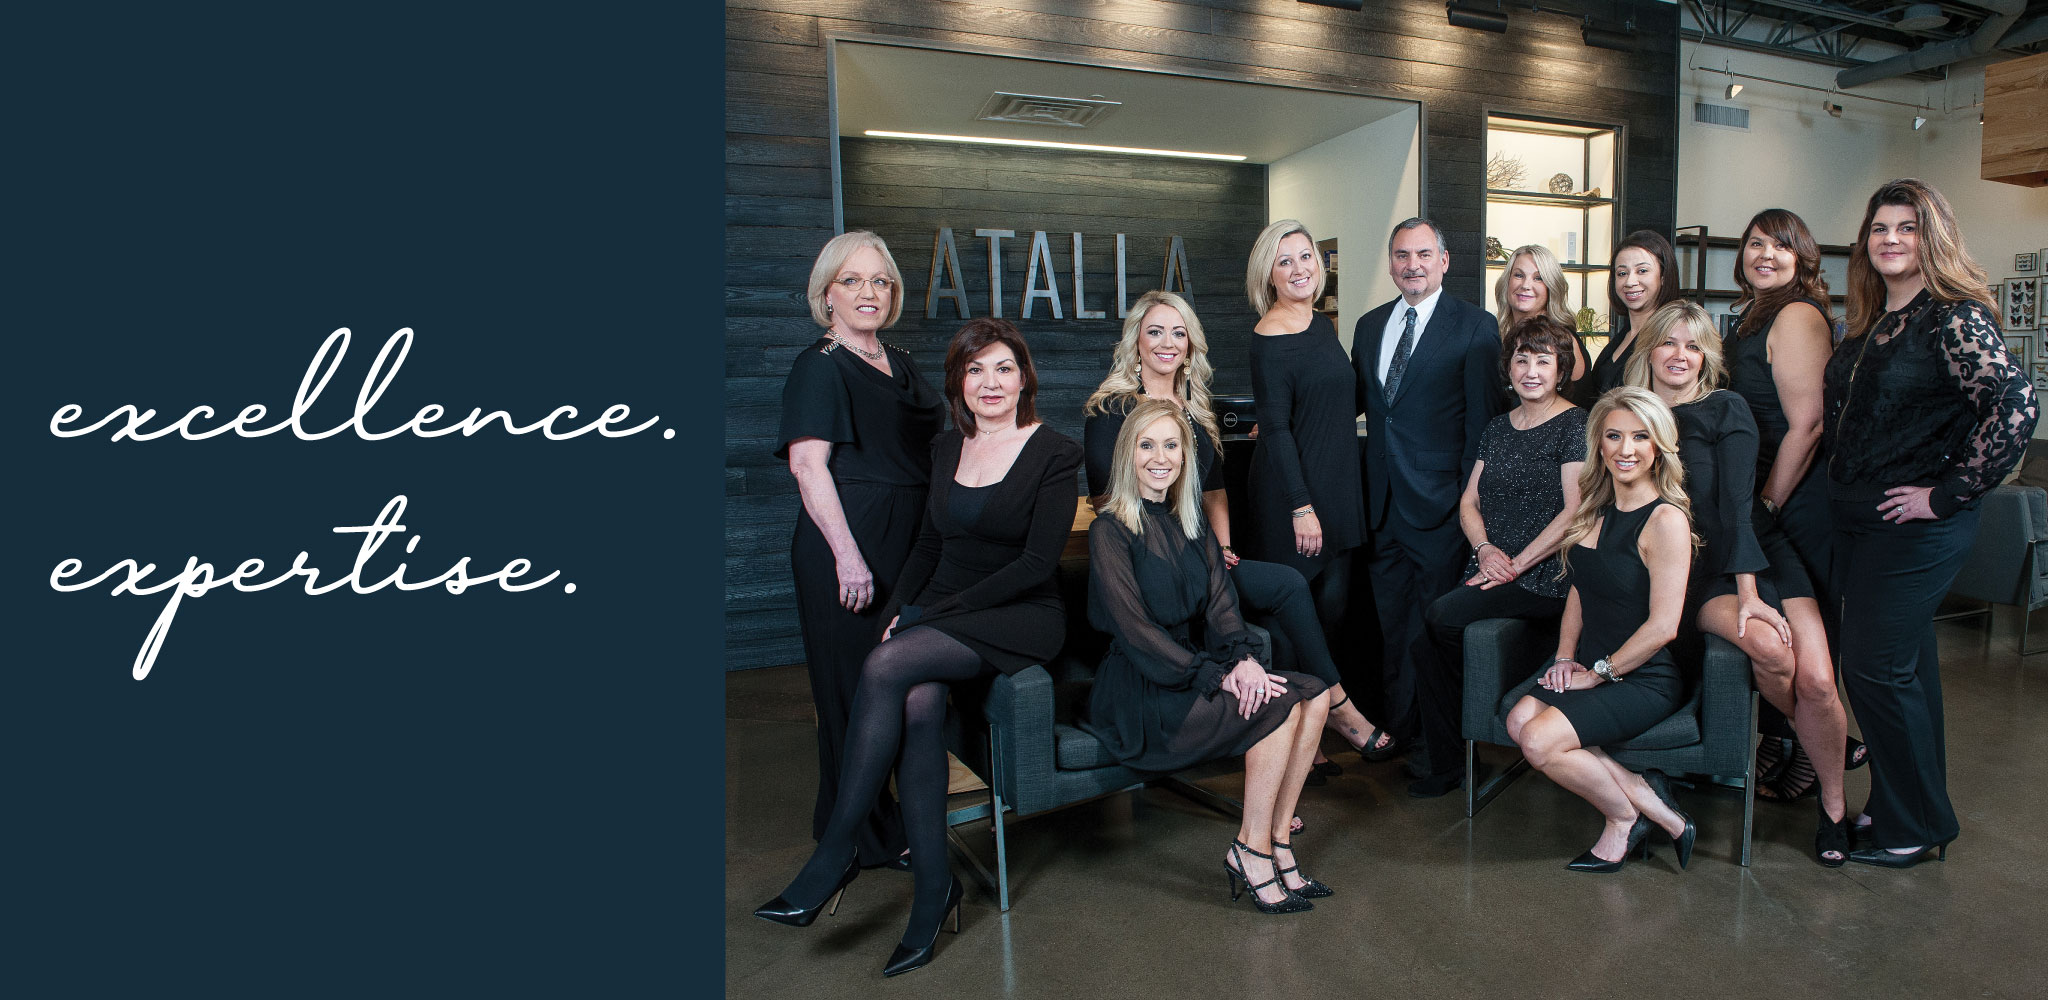 Atalla Plastic Surgery | skin + laser STAFF excellence expertise